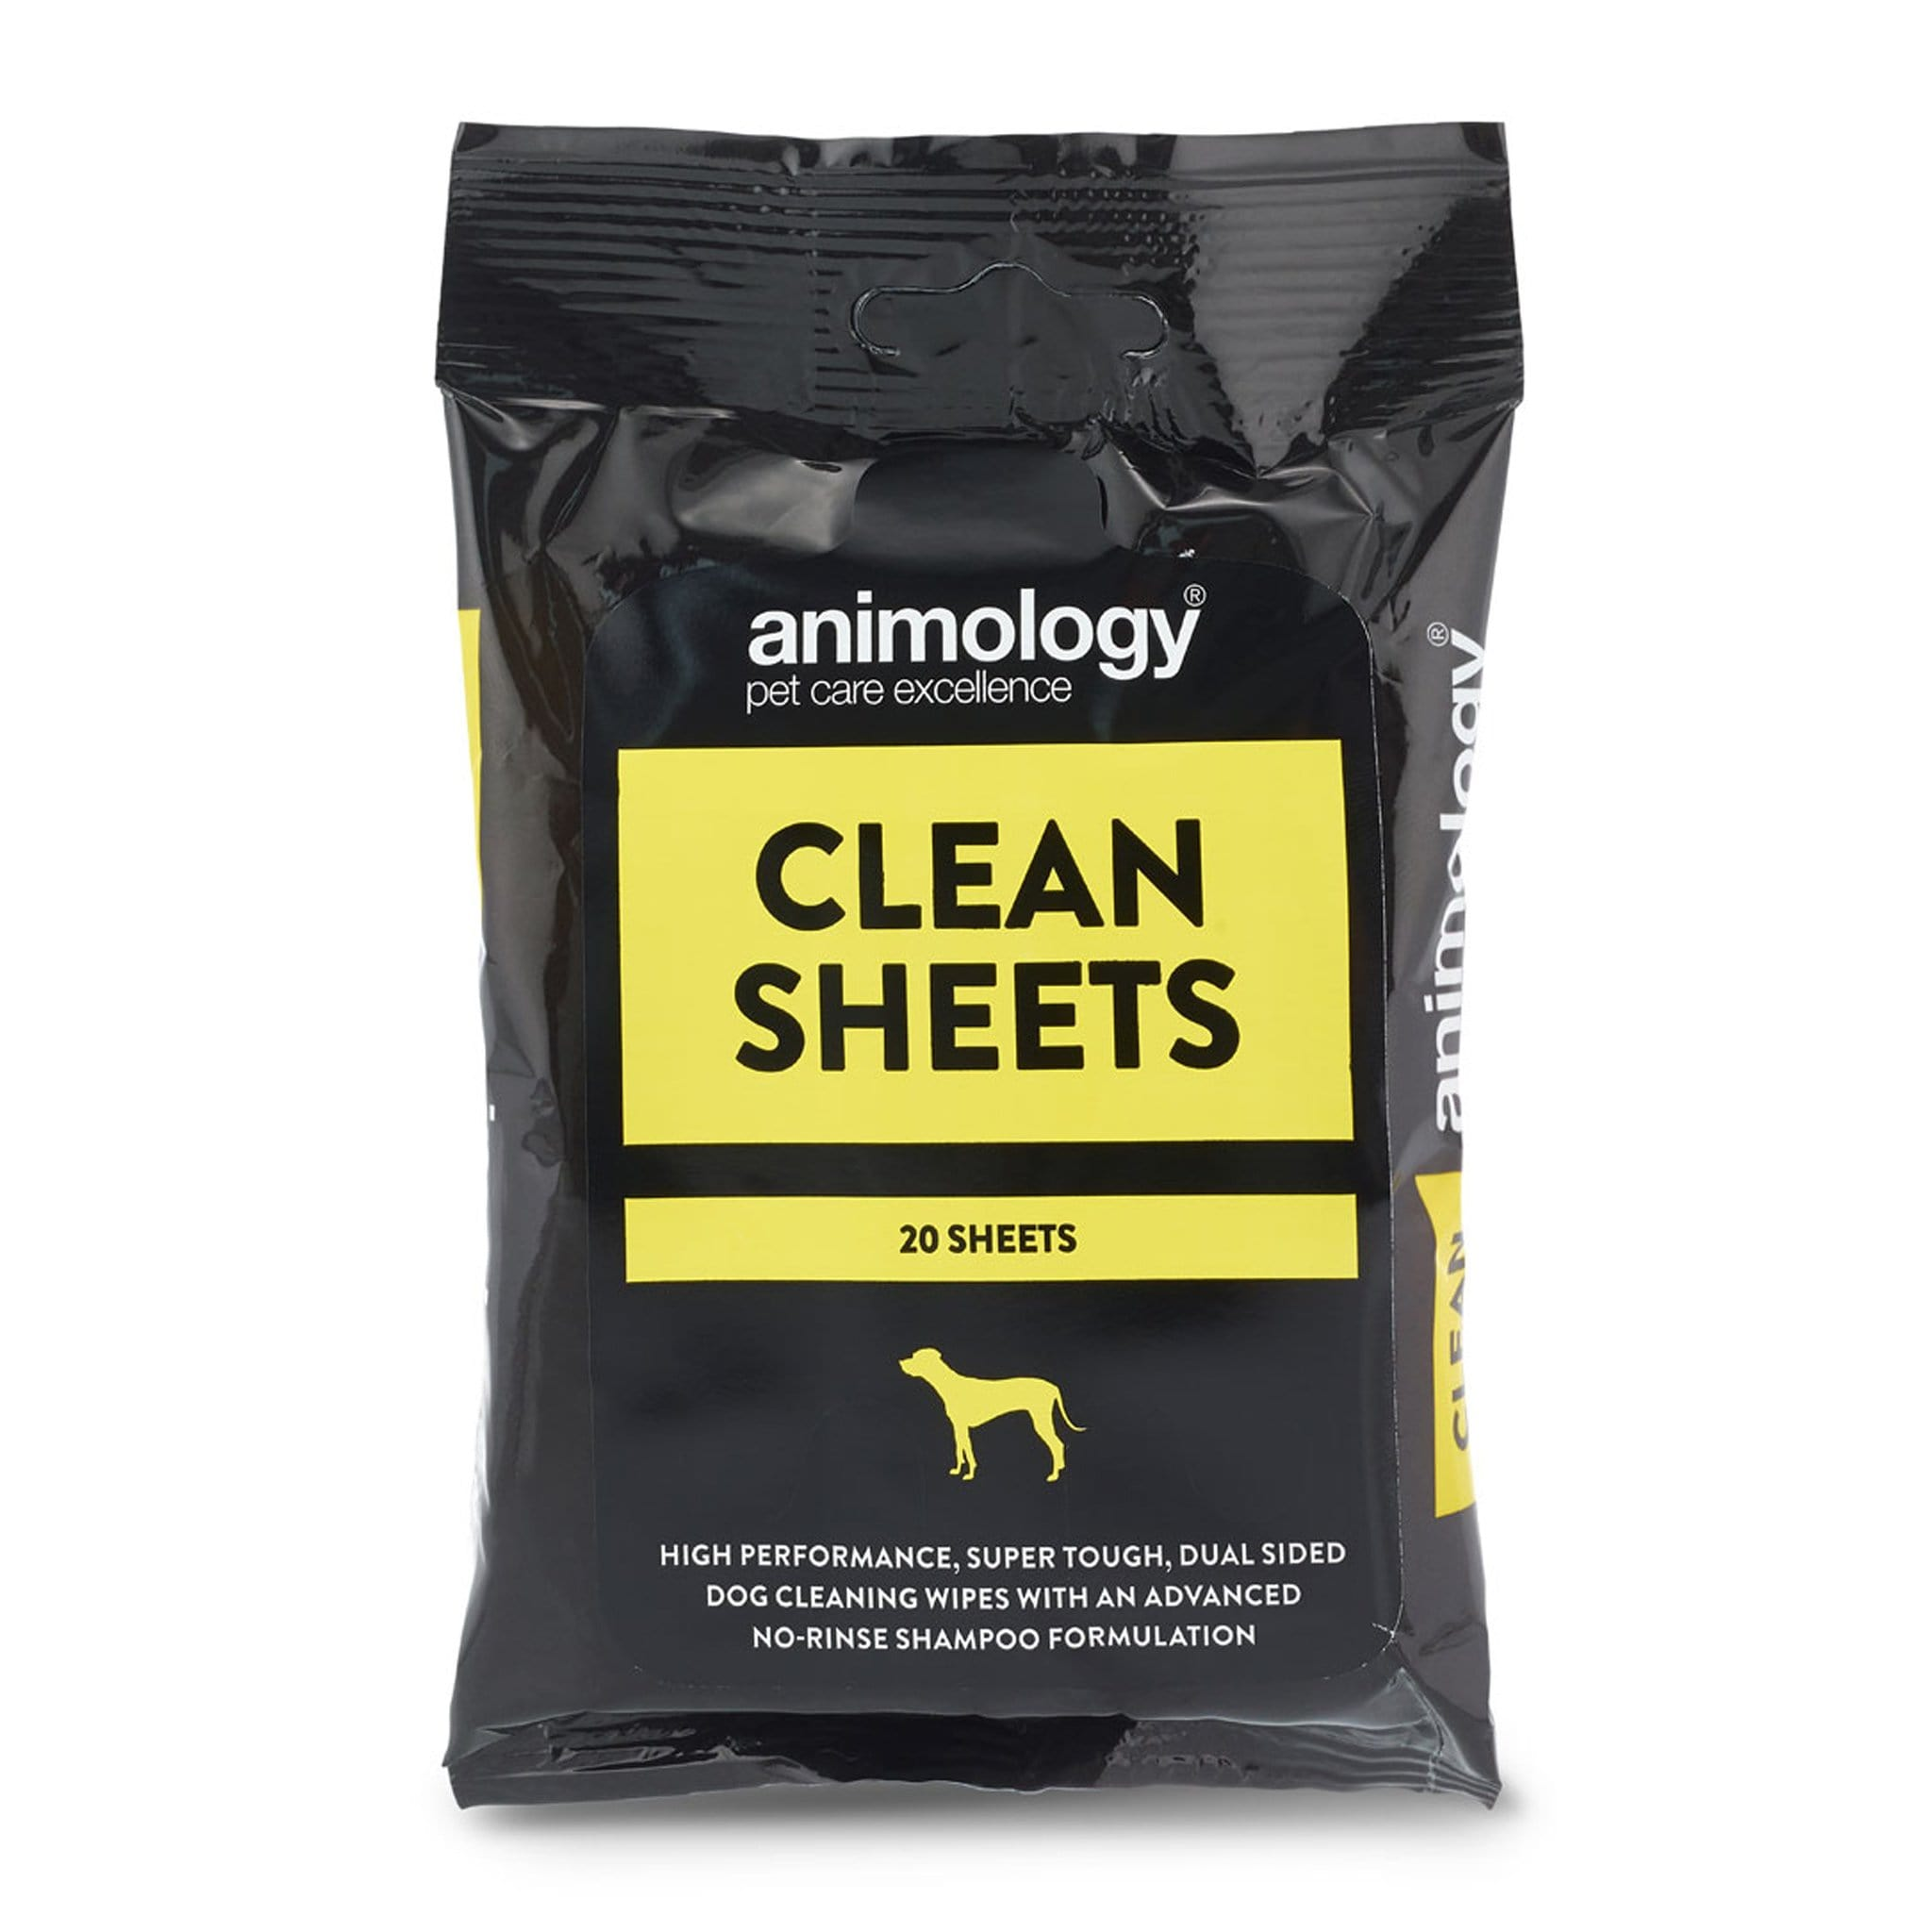 Animology Clean Sheets Dog Cleaning Wipes 11442 20 Pack Sealed